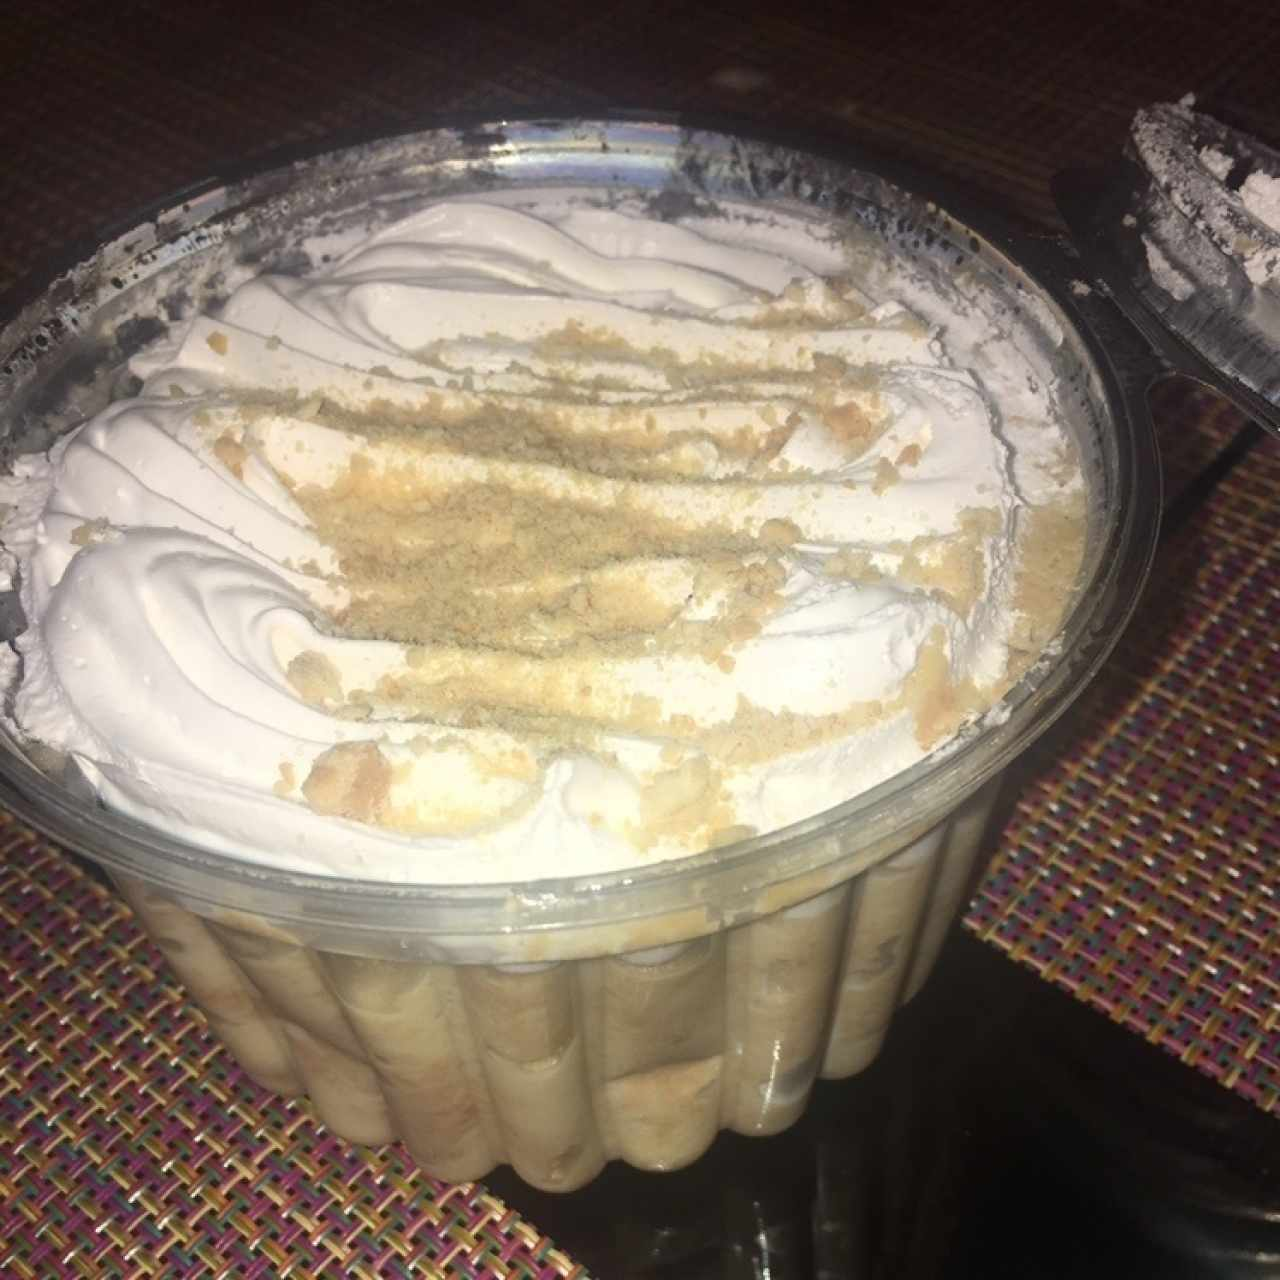 tres leches con galleta de María